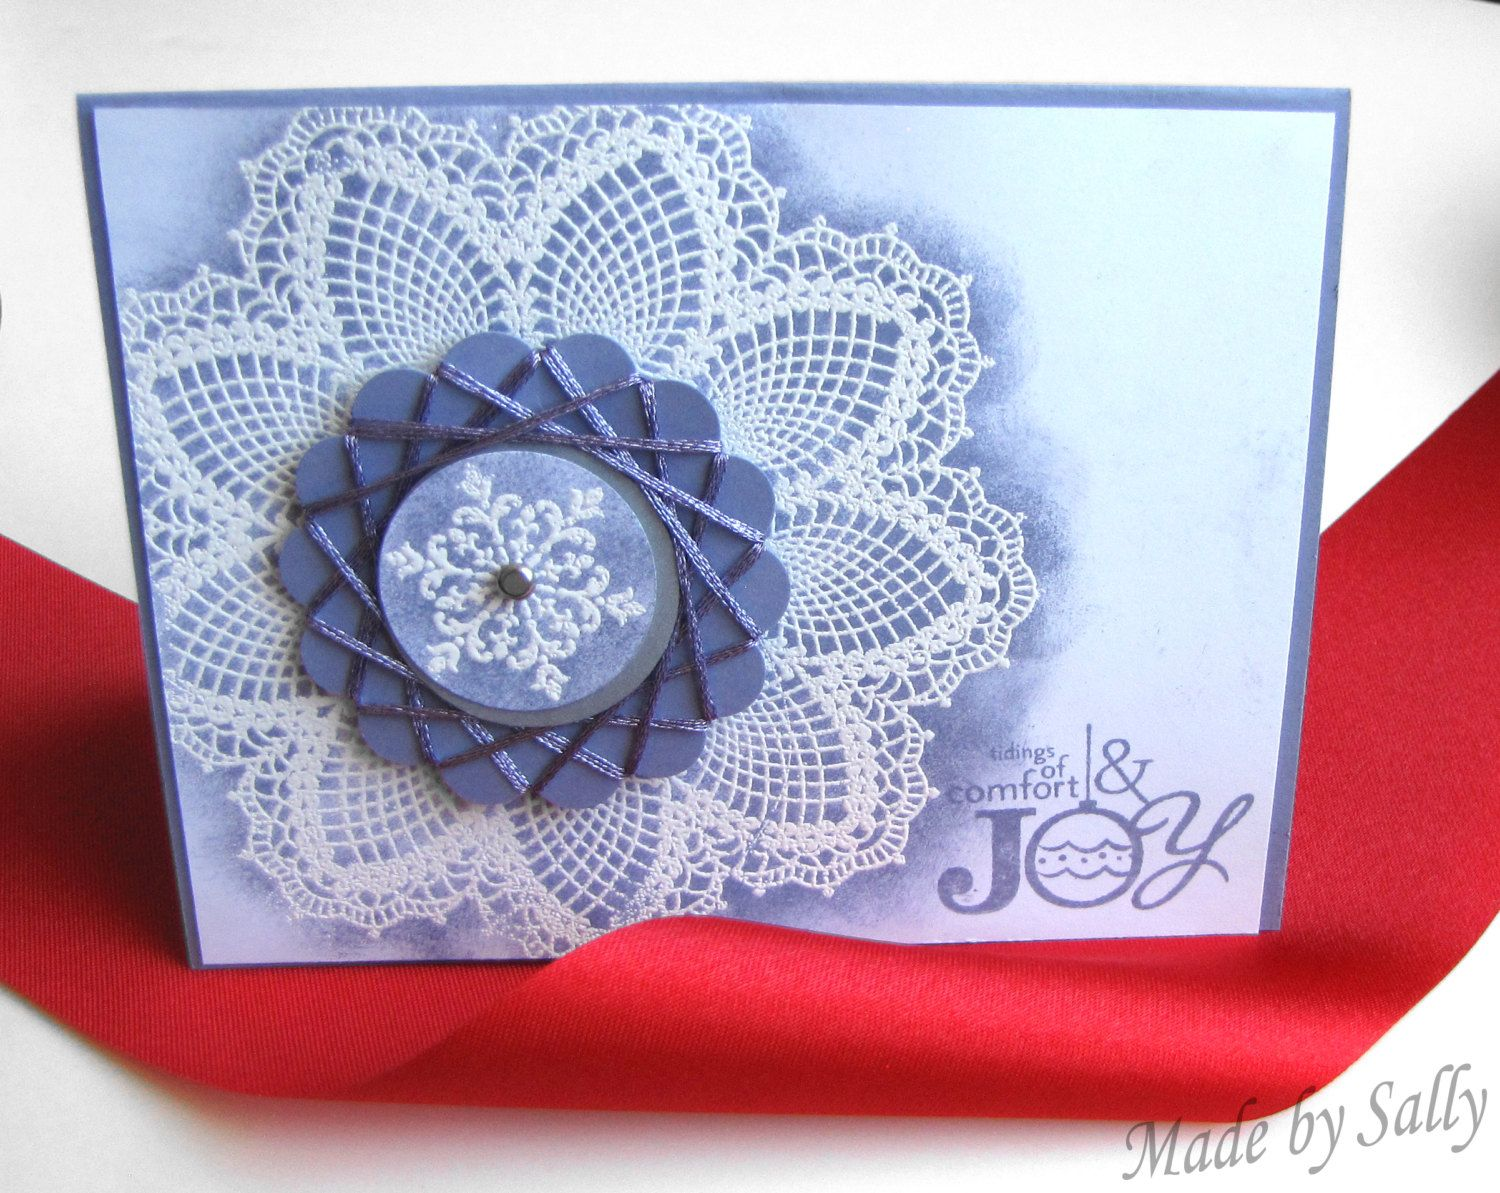 Tidings of Comfort and Joy Greeting Card, Handmade by